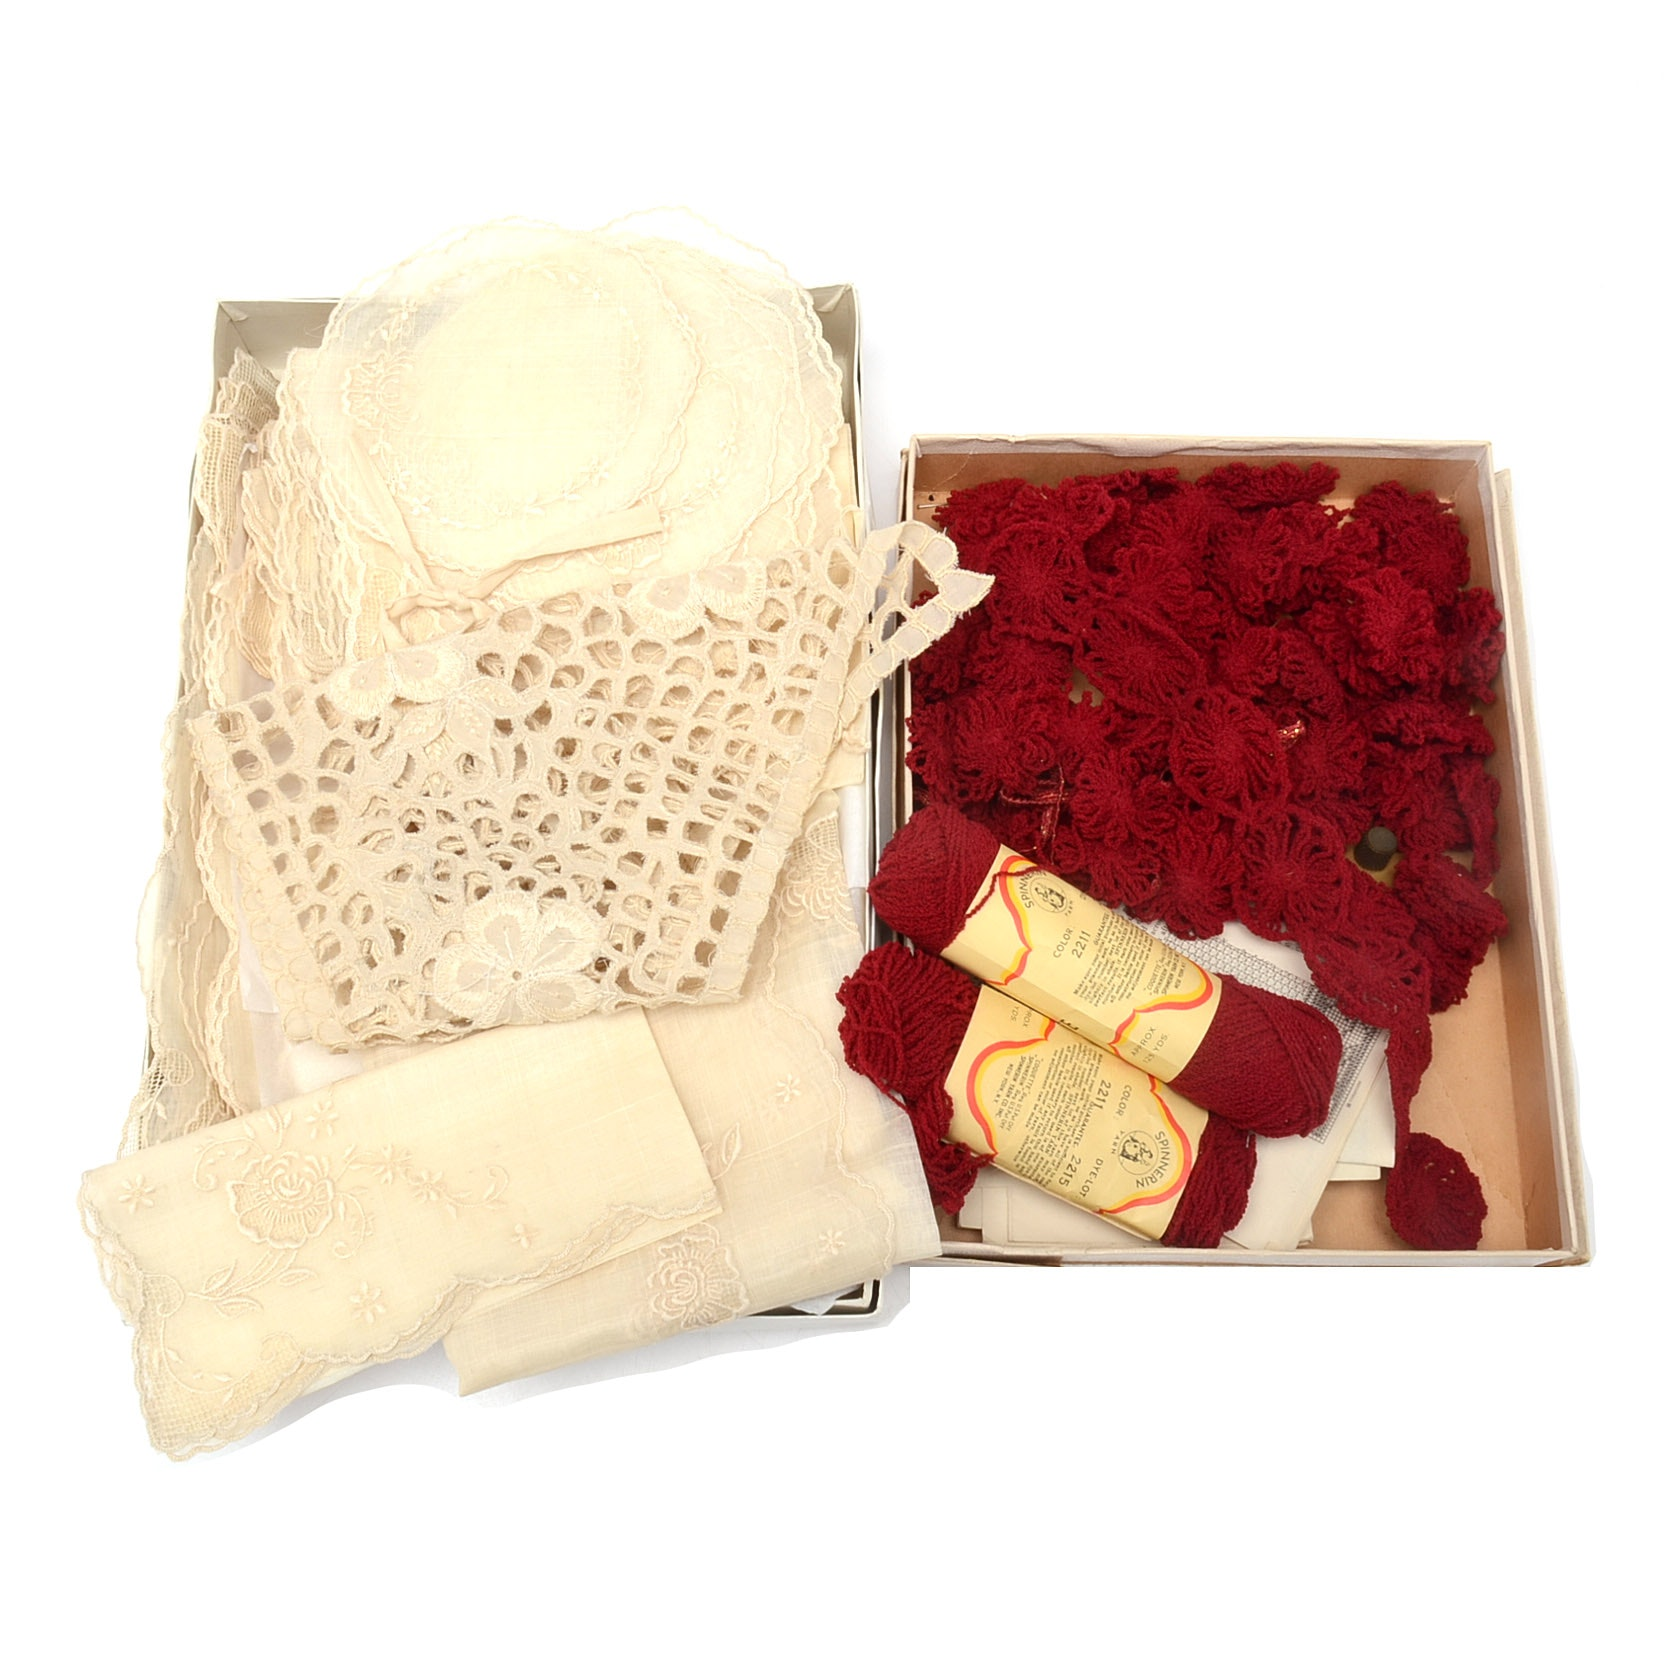 Vintage Lace Table Linens and Crochet Supplies